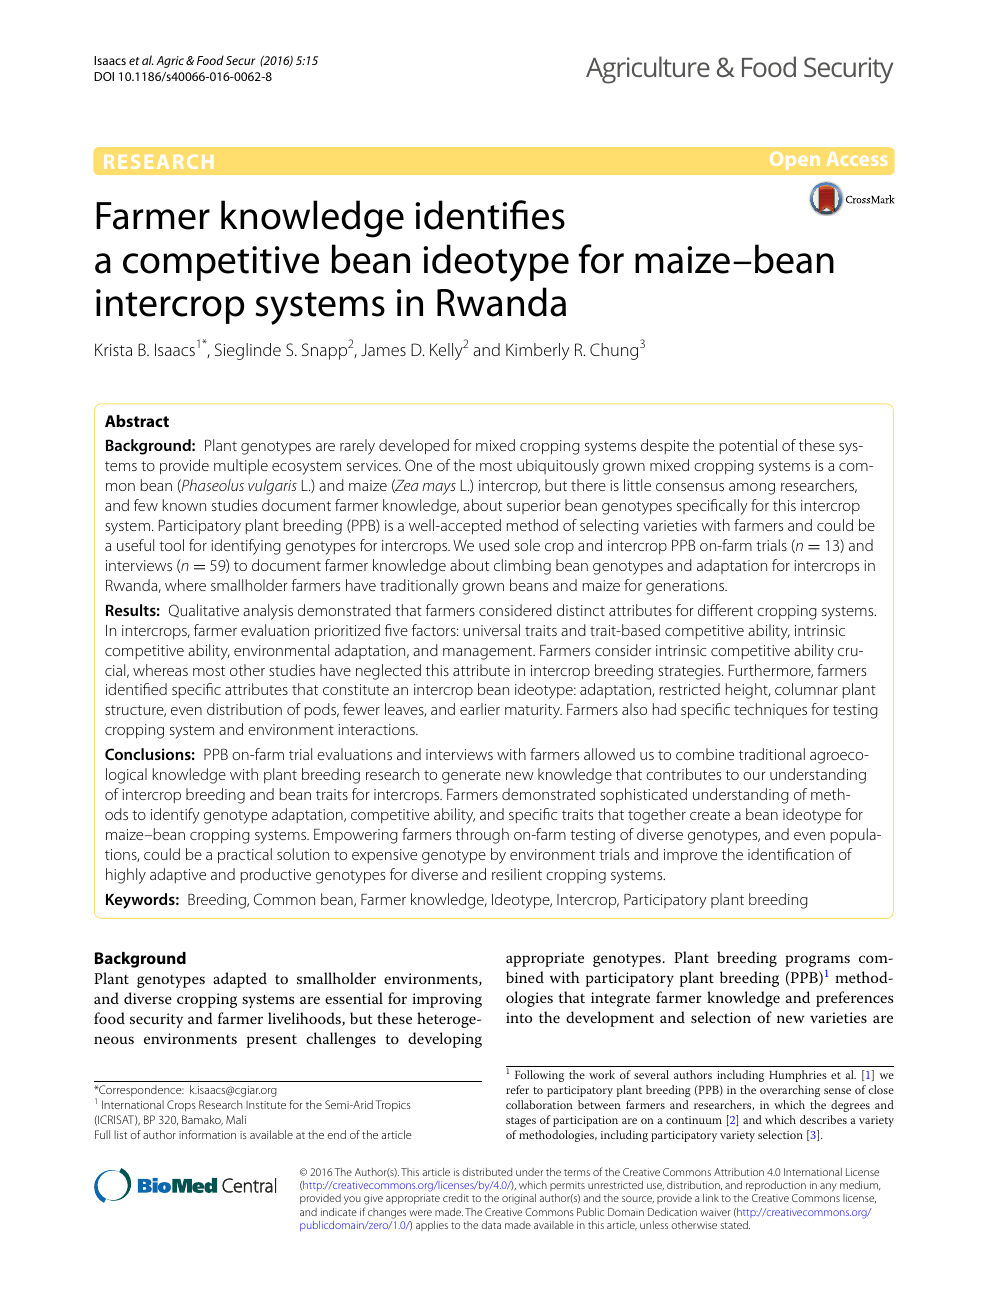 Farmer knowledge identifies a competitive bean ideotype for maize